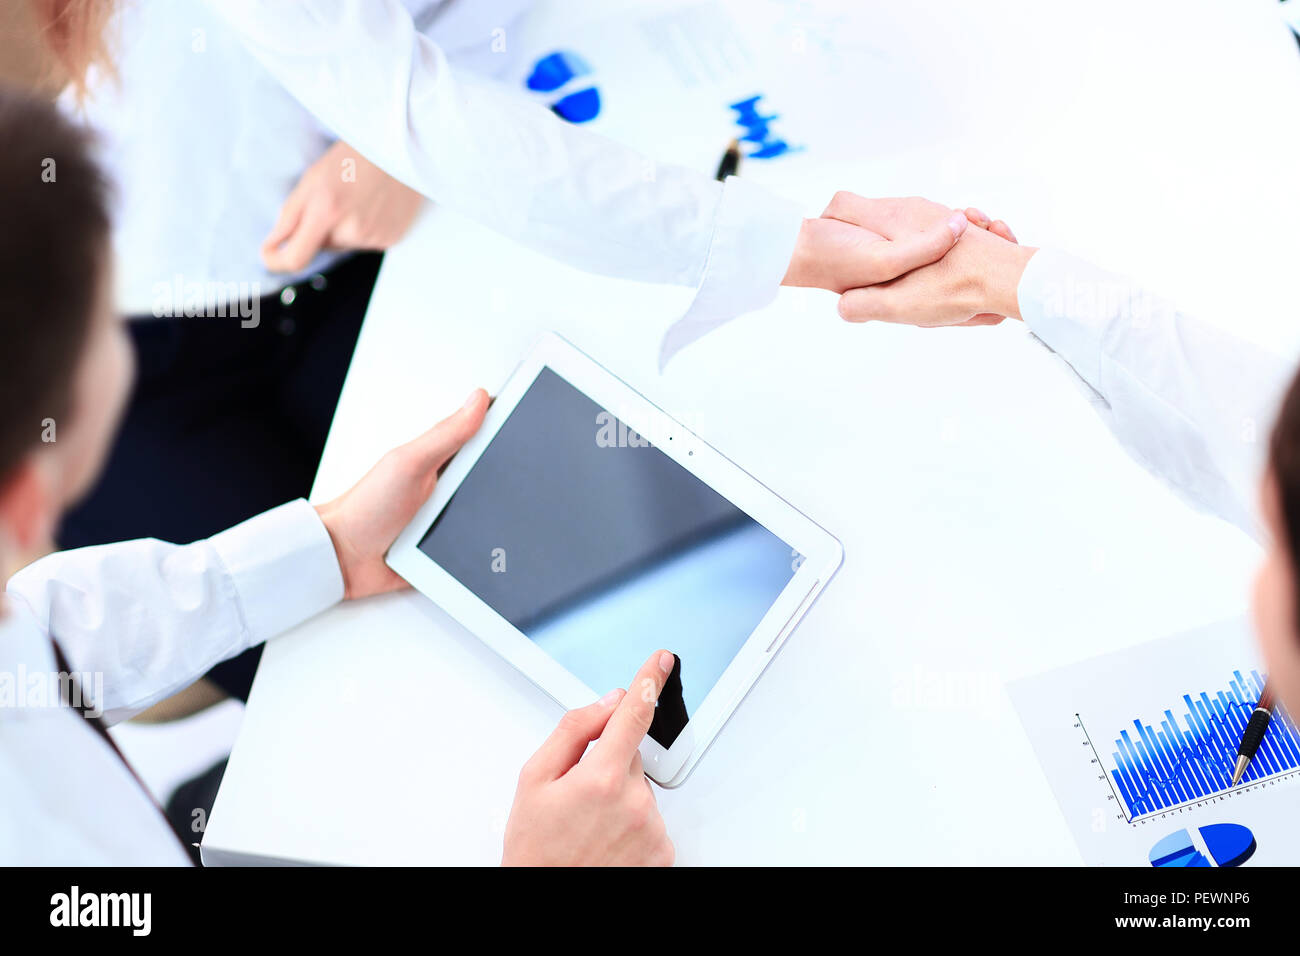 Image of human hand pointing at touchscreen with business document - Stock Image